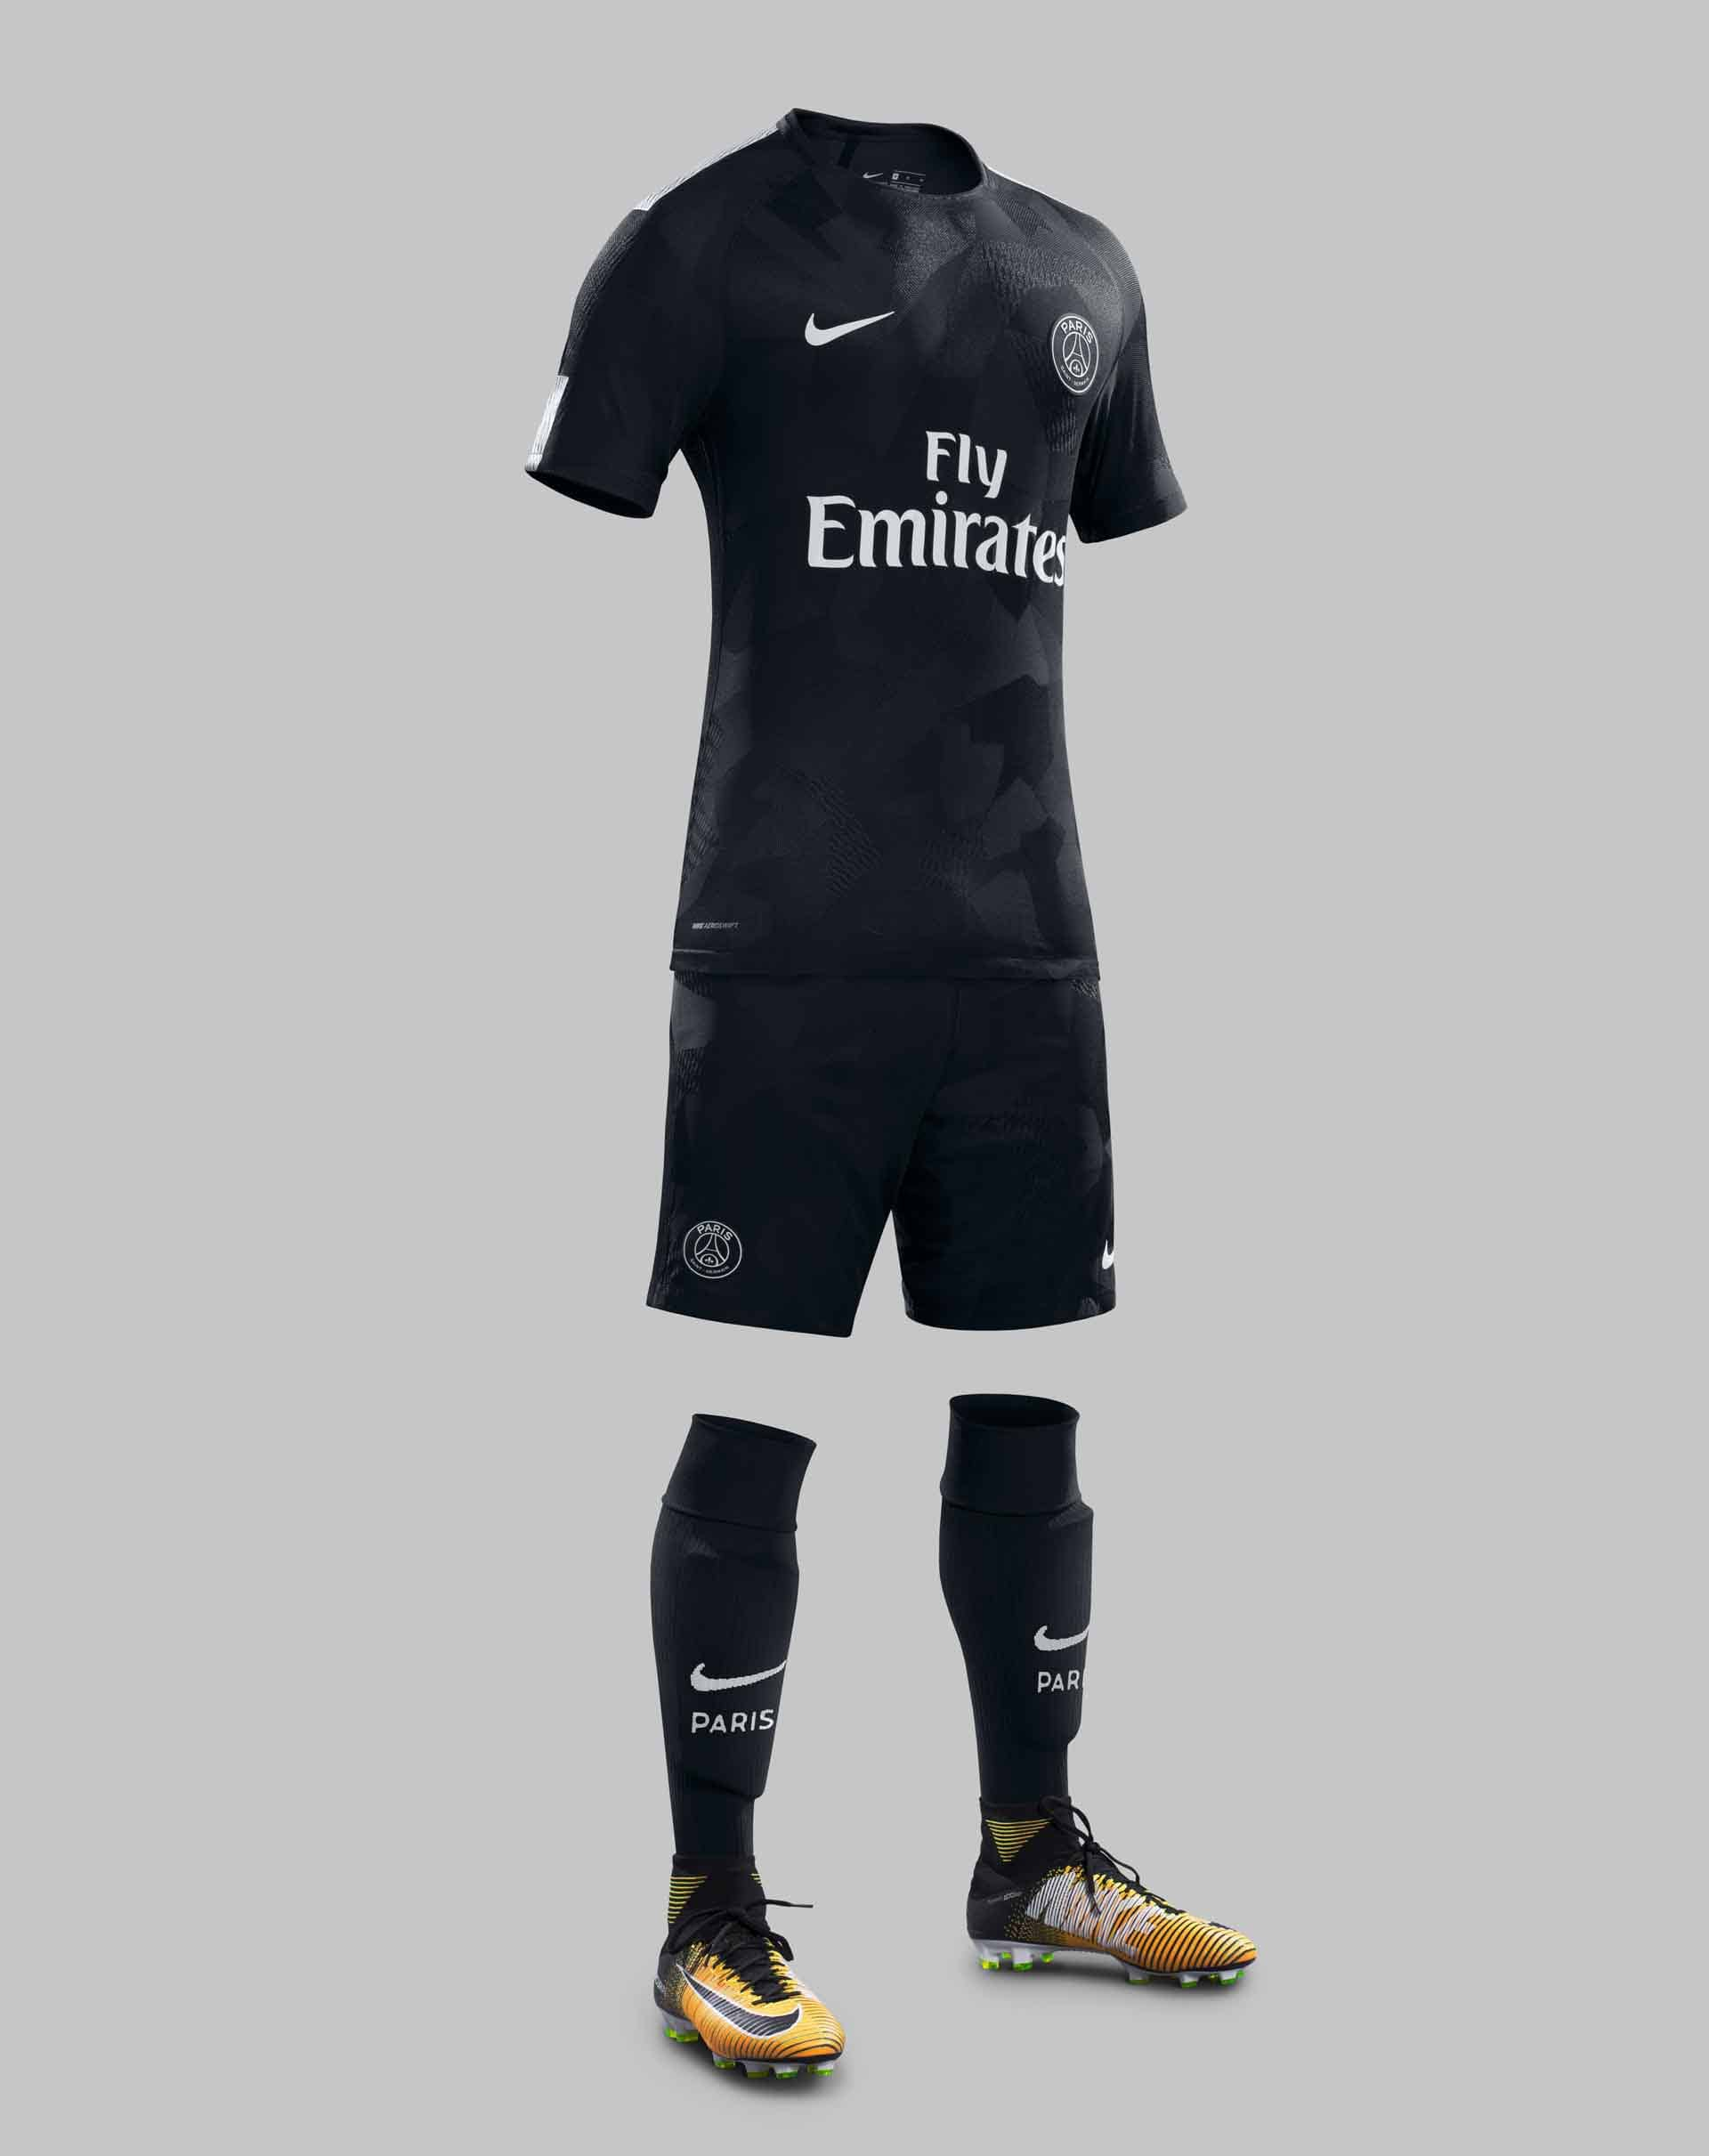 63a233f5b21 Neymar Reveals PSG 17 18 Nike Third Kit - SoccerBible